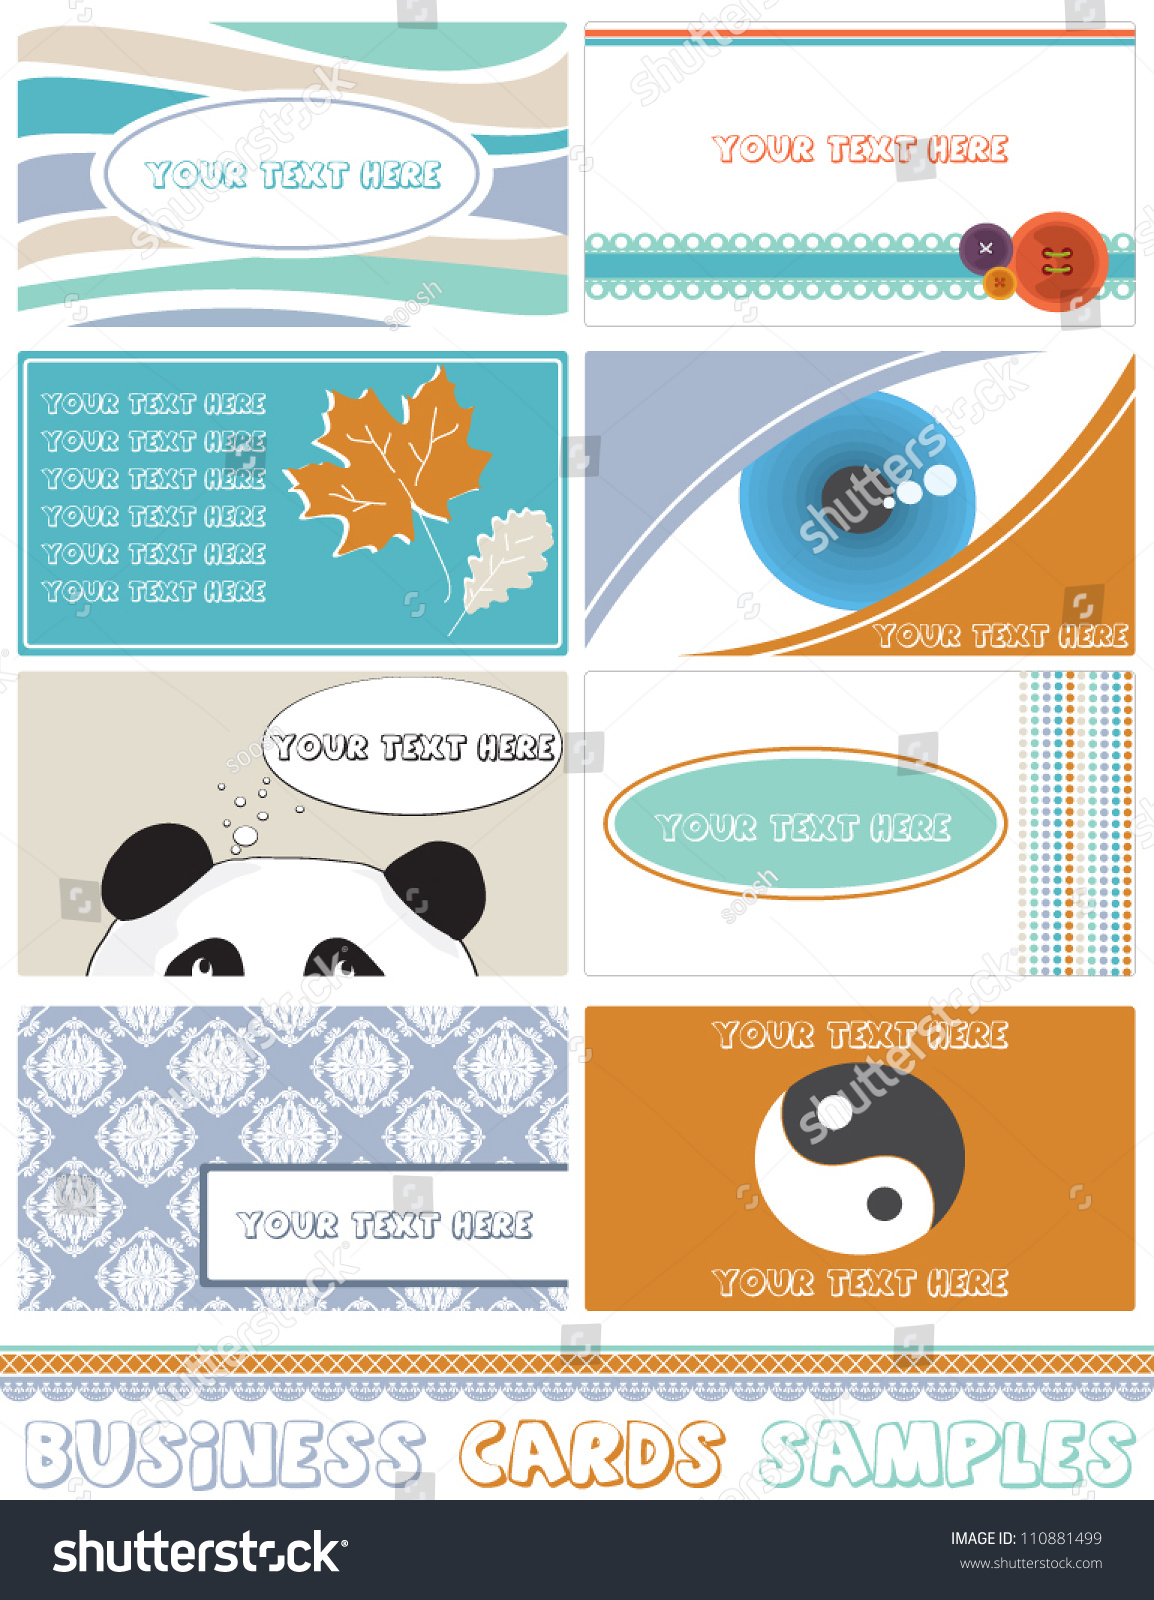 Free Business Card Samples Images - Free Business Cards